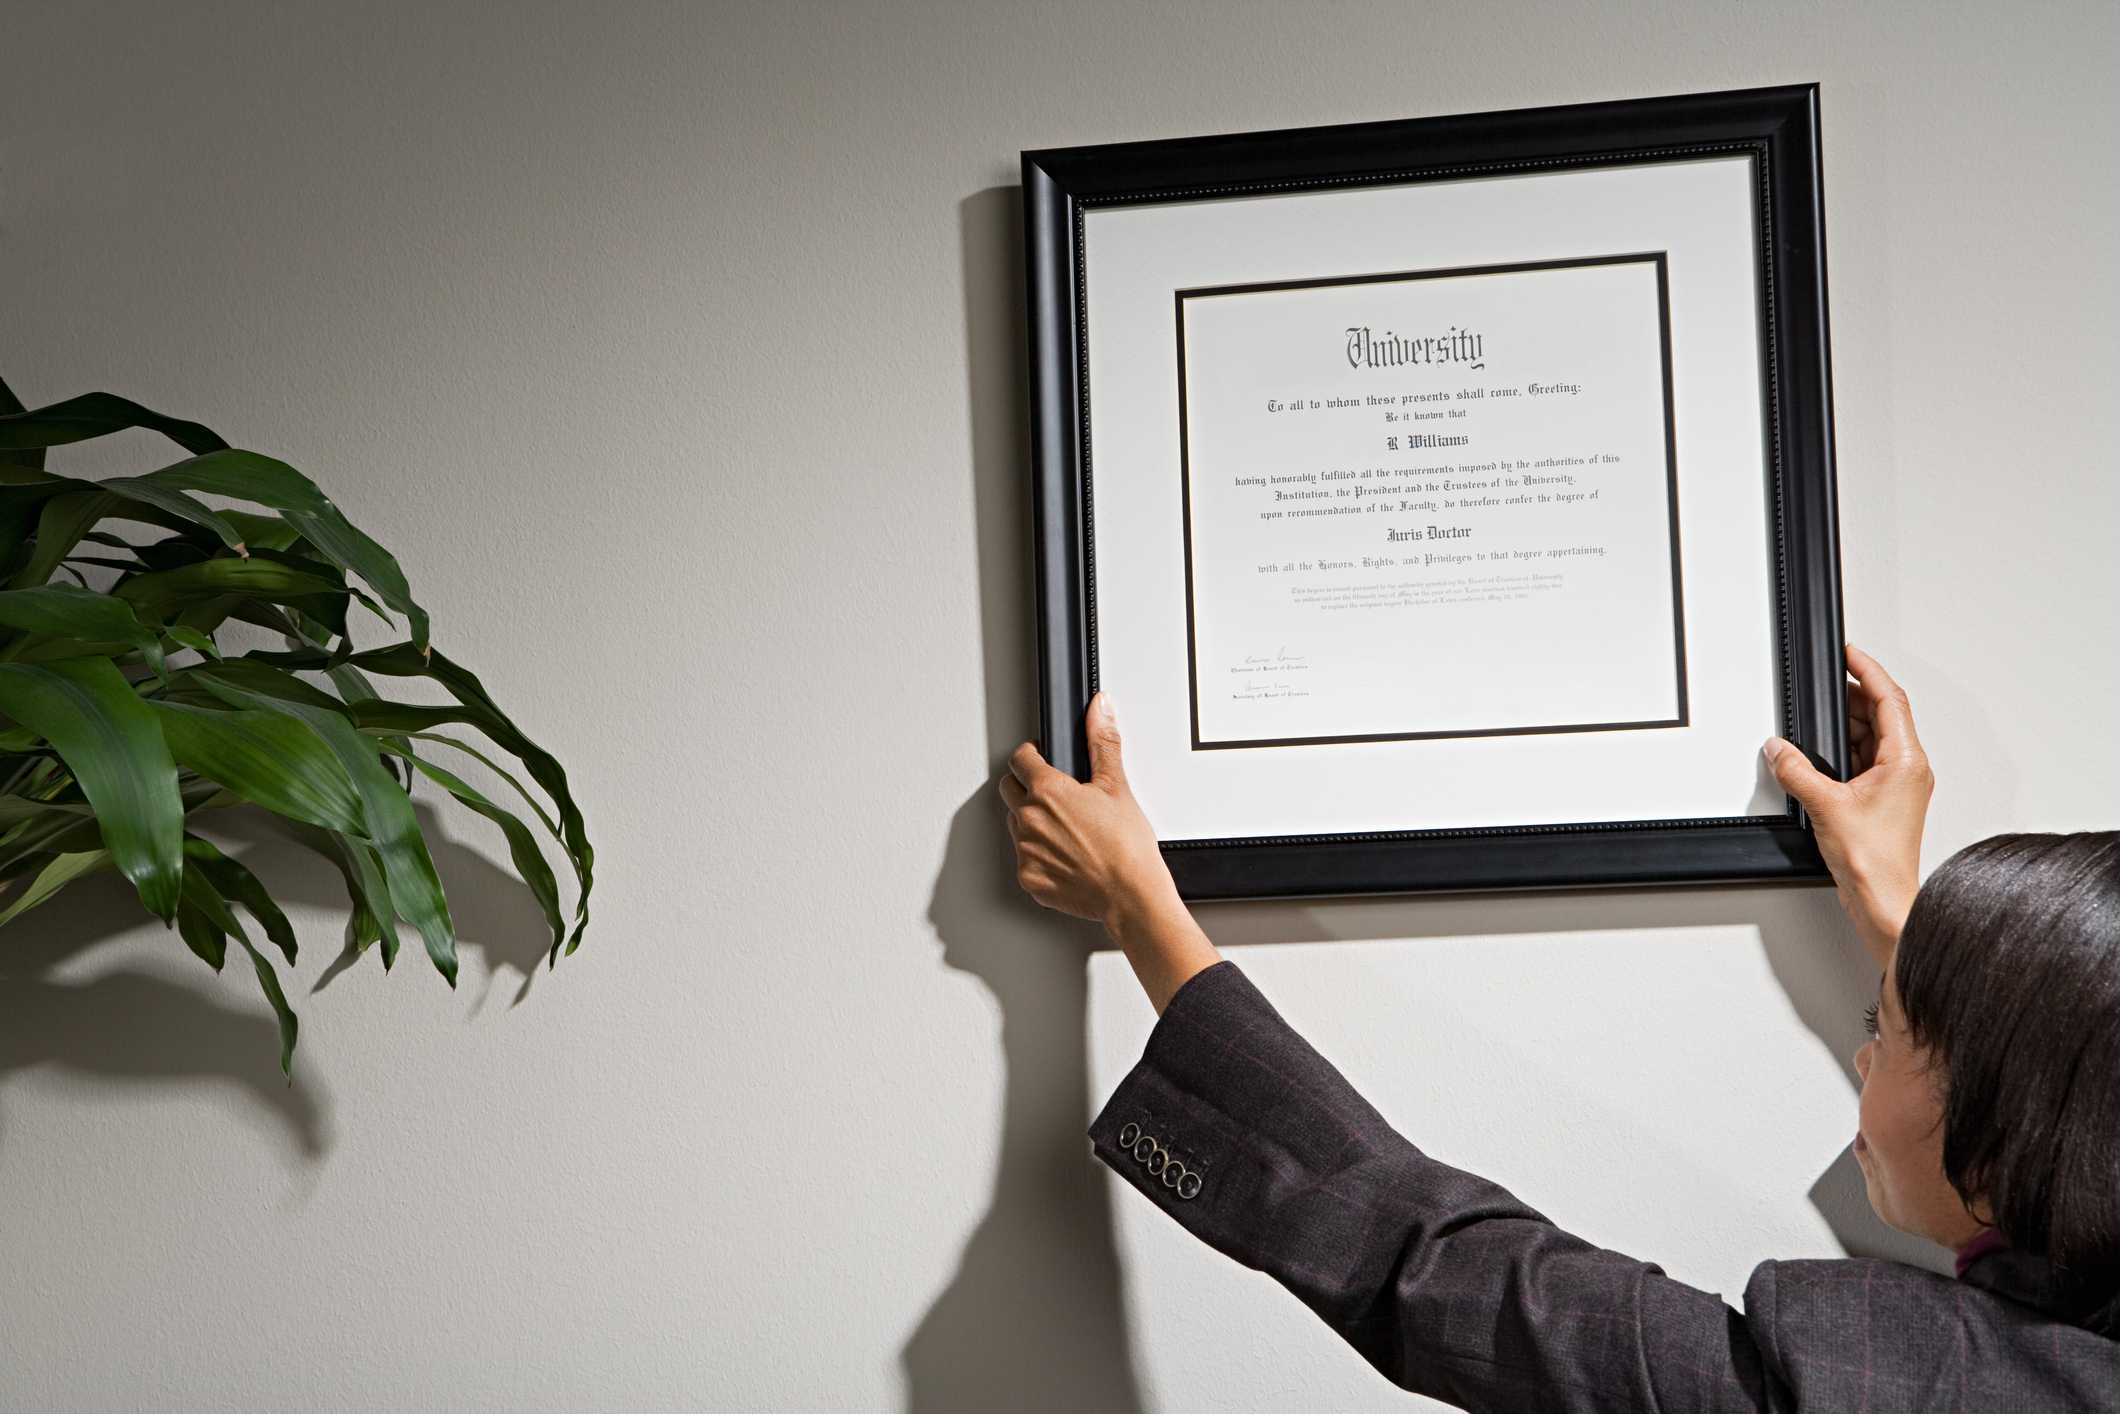 Hanging a certificate